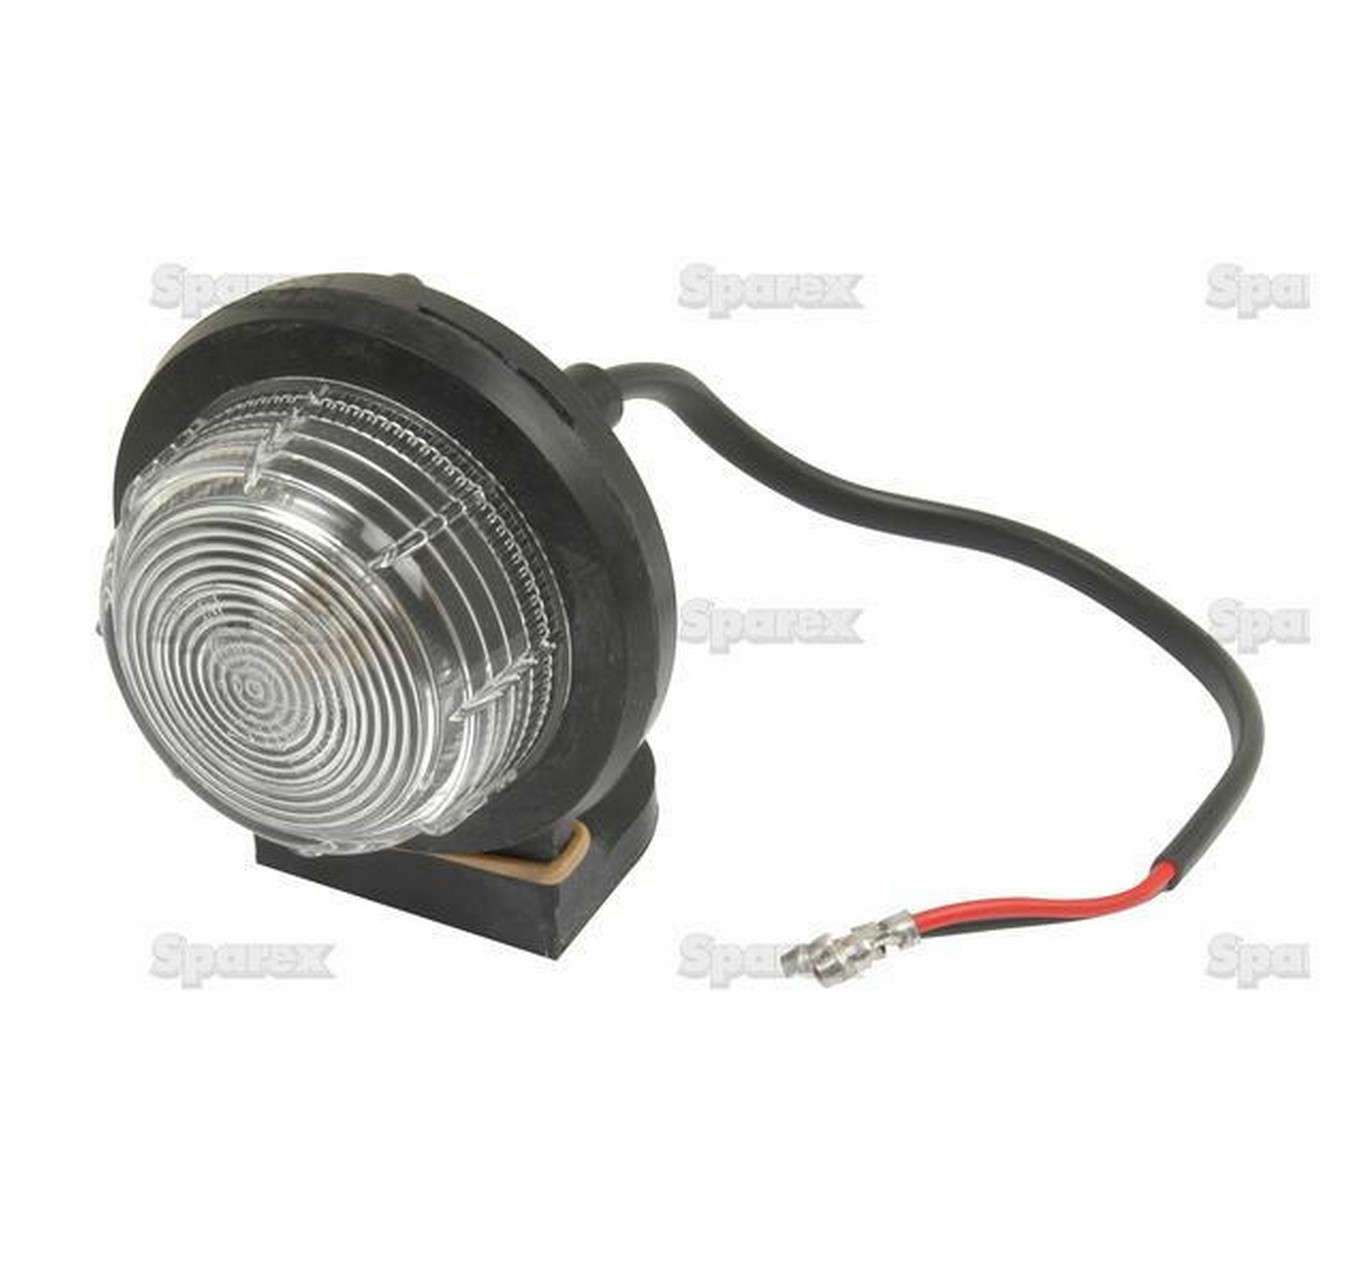 Britax Marker Light